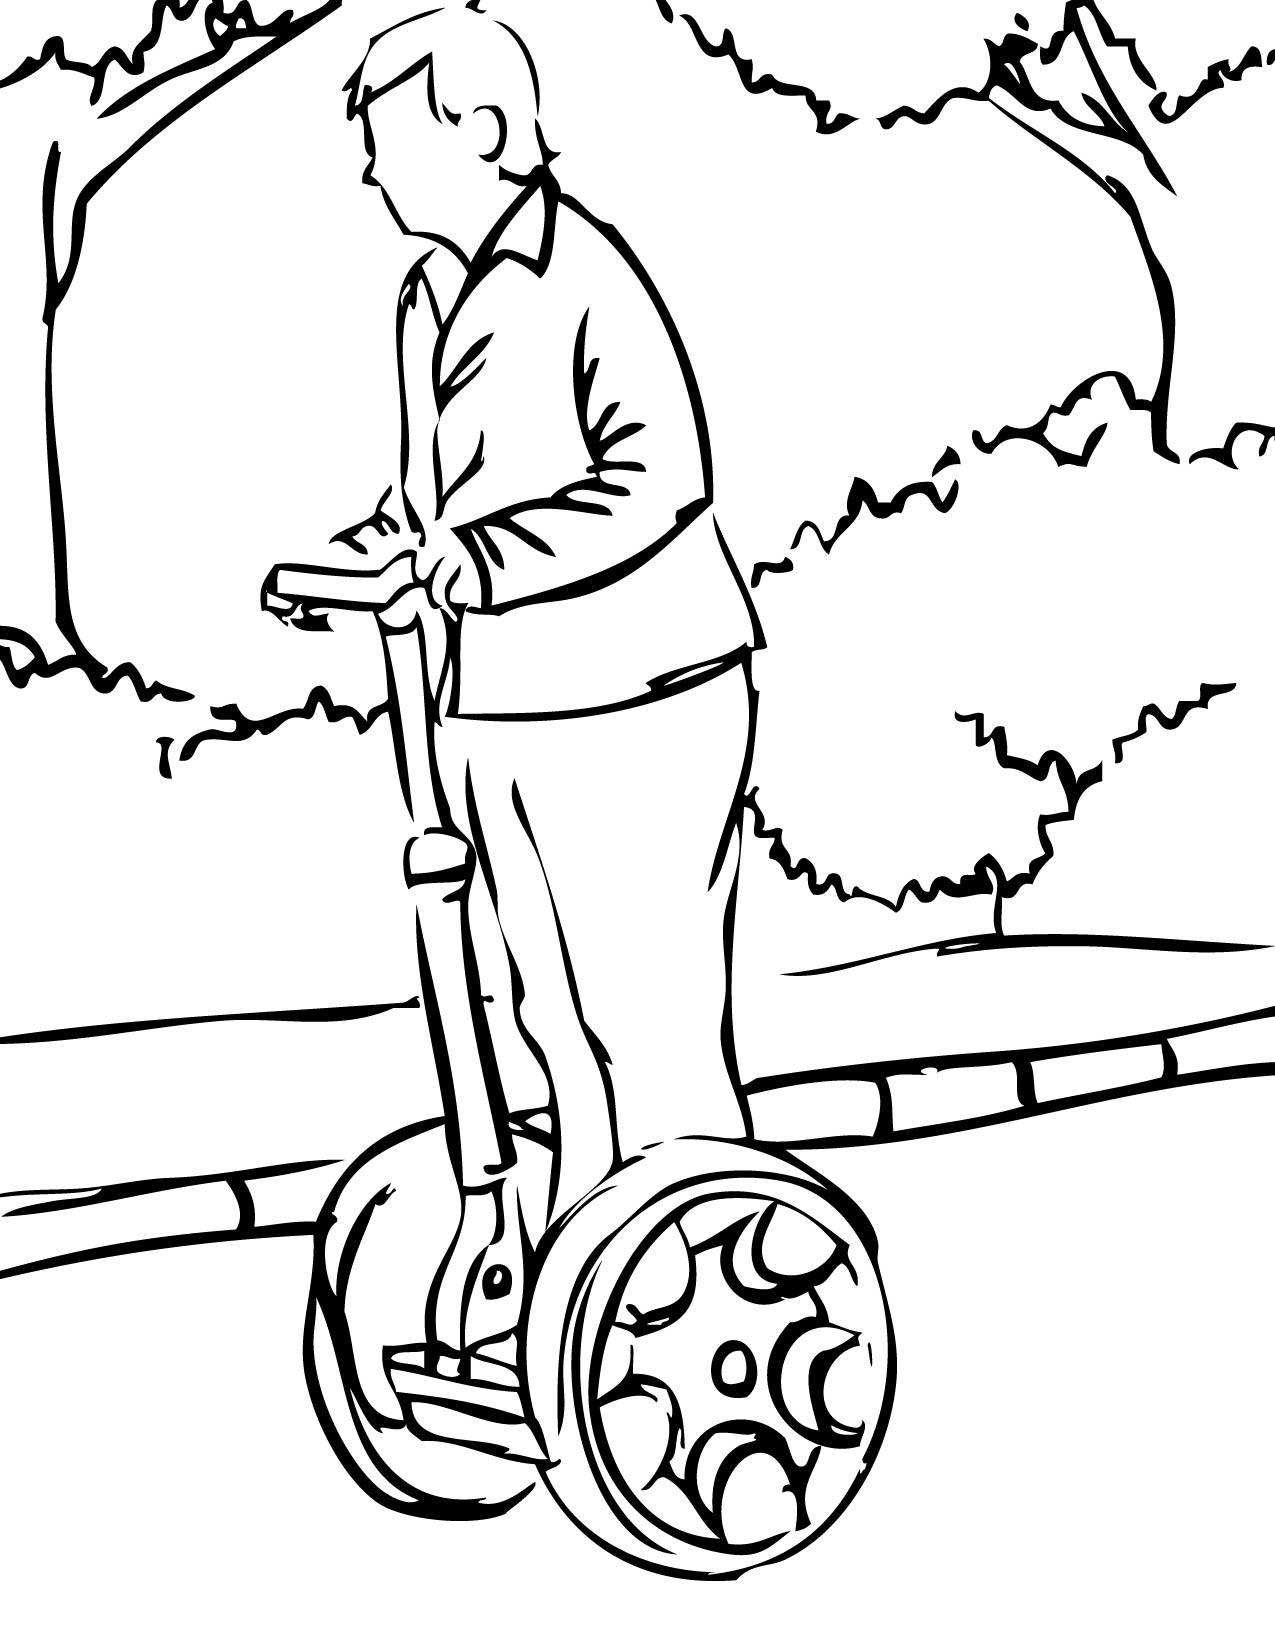 Coloring sheet roll - Print This Page Things That Roll Coloring Pages Coloring Pages